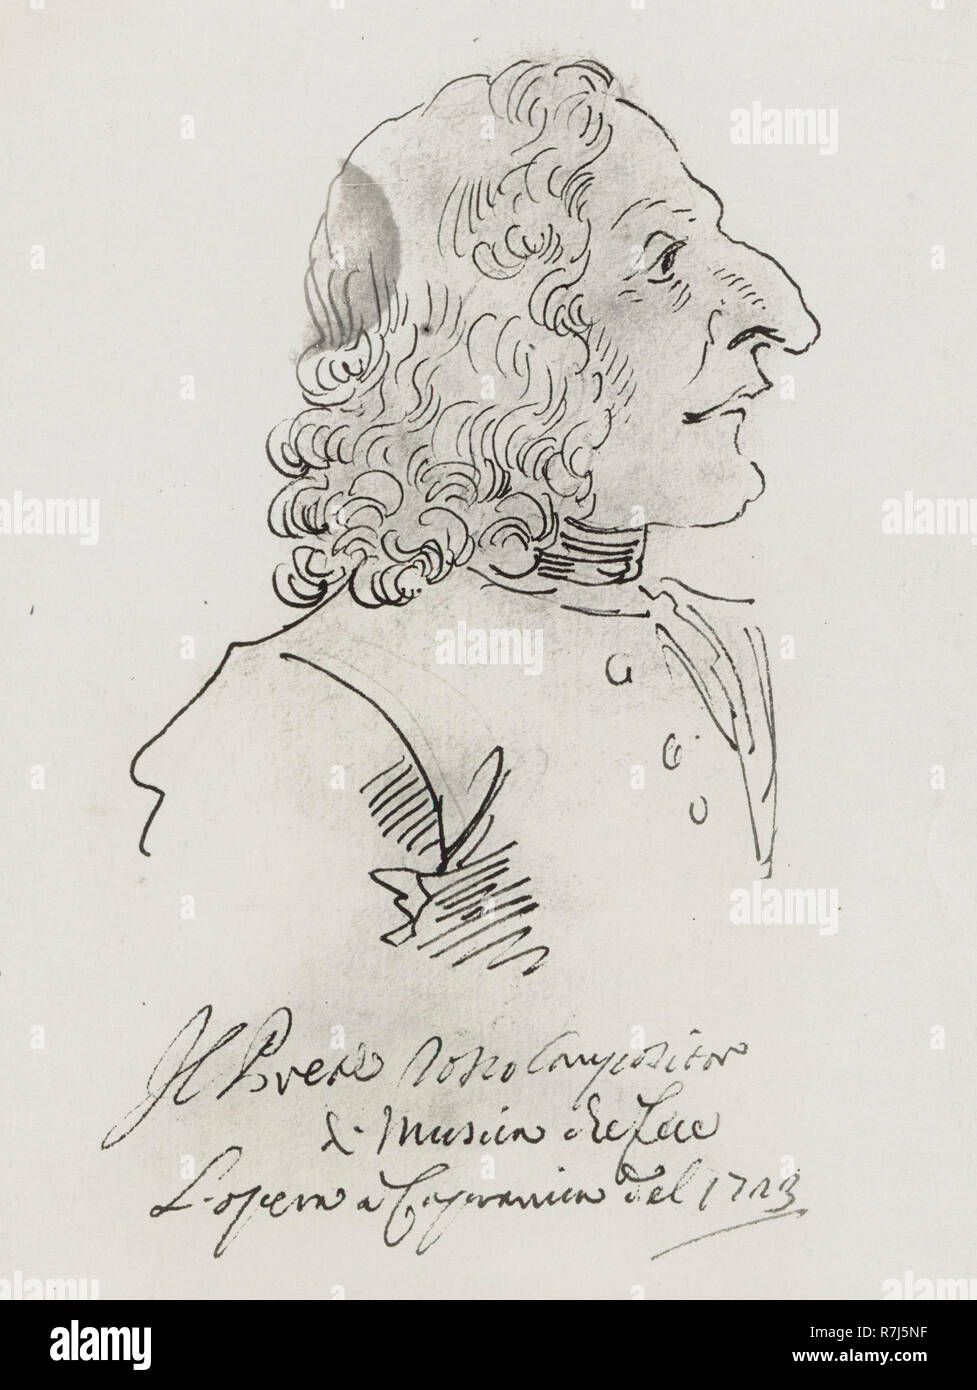 Caricature of Antonio Vivaldi by Pier Leone Ghezzi in 1723. Text translates to 'The Red Priest, composer of music who made the opera at the Capranica of 1723.' - Stock Image